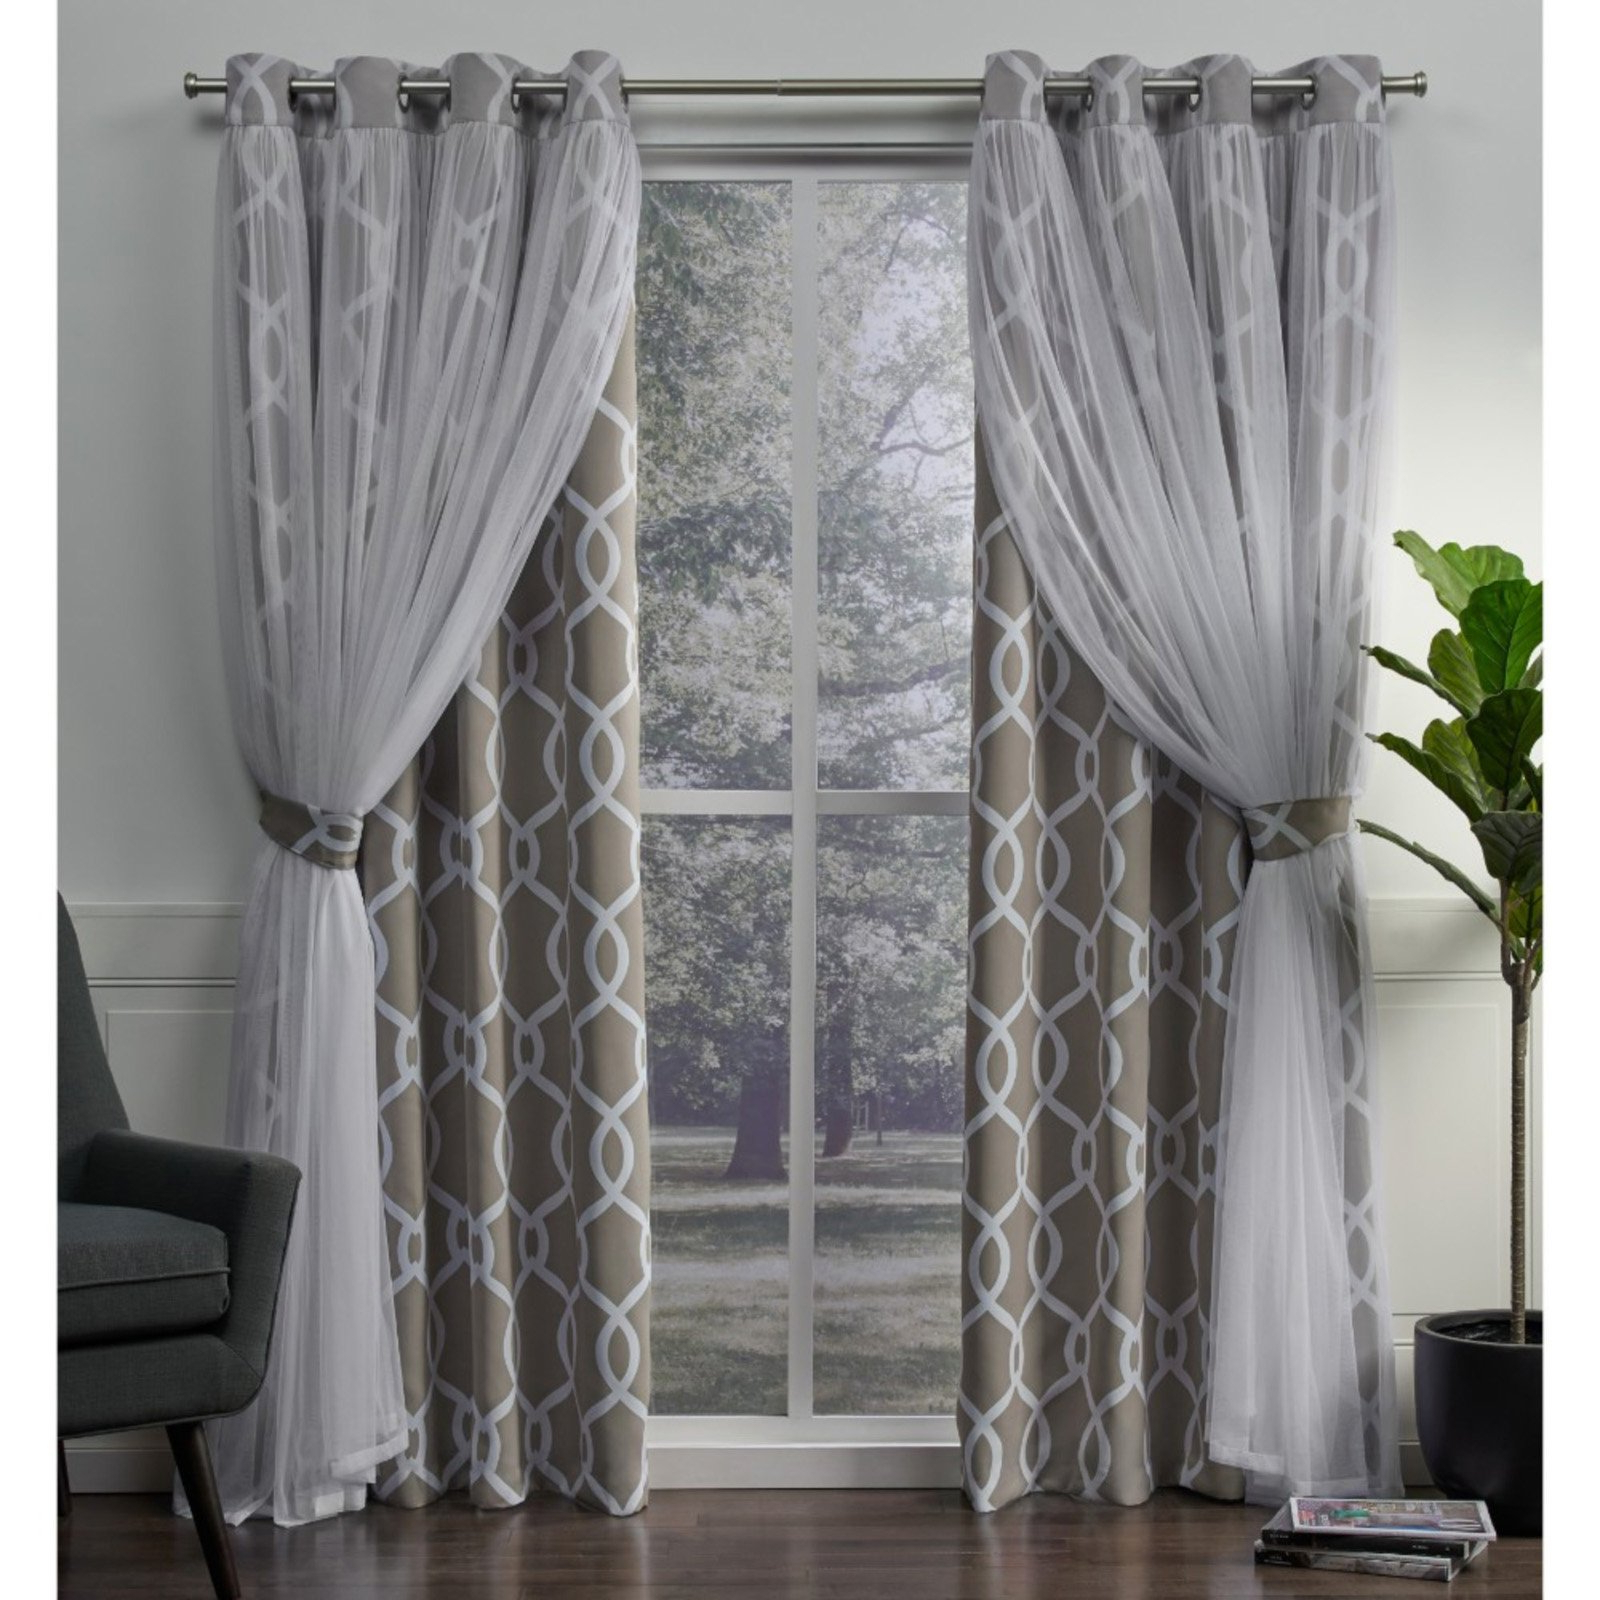 2021 Bethany Sheer Overlay Blackout Window Curtains Intended For Exclusive Home Carmela Layered Geometric Blackout And Sheer (View 17 of 20)